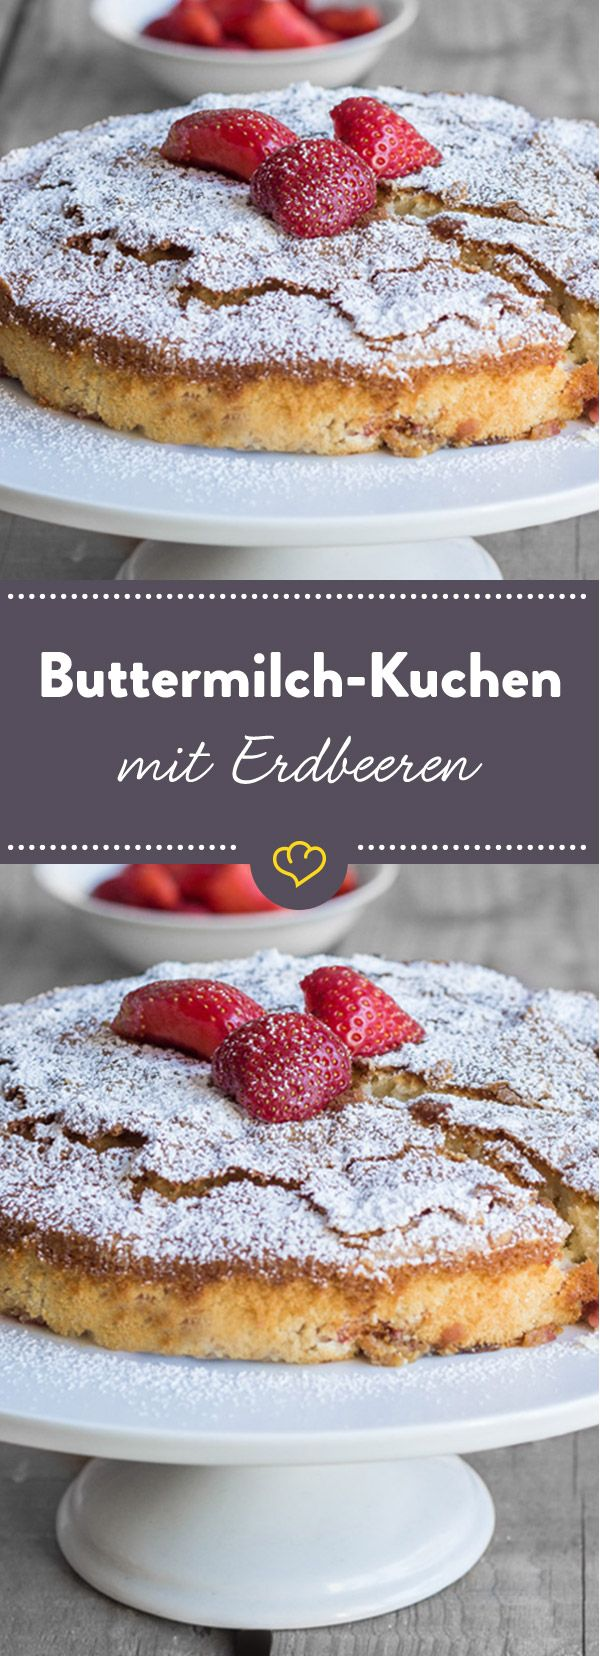 die besten 25 buttermilch kuchen ideen auf pinterest buttermilch kokos kuchen 3 schichten. Black Bedroom Furniture Sets. Home Design Ideas